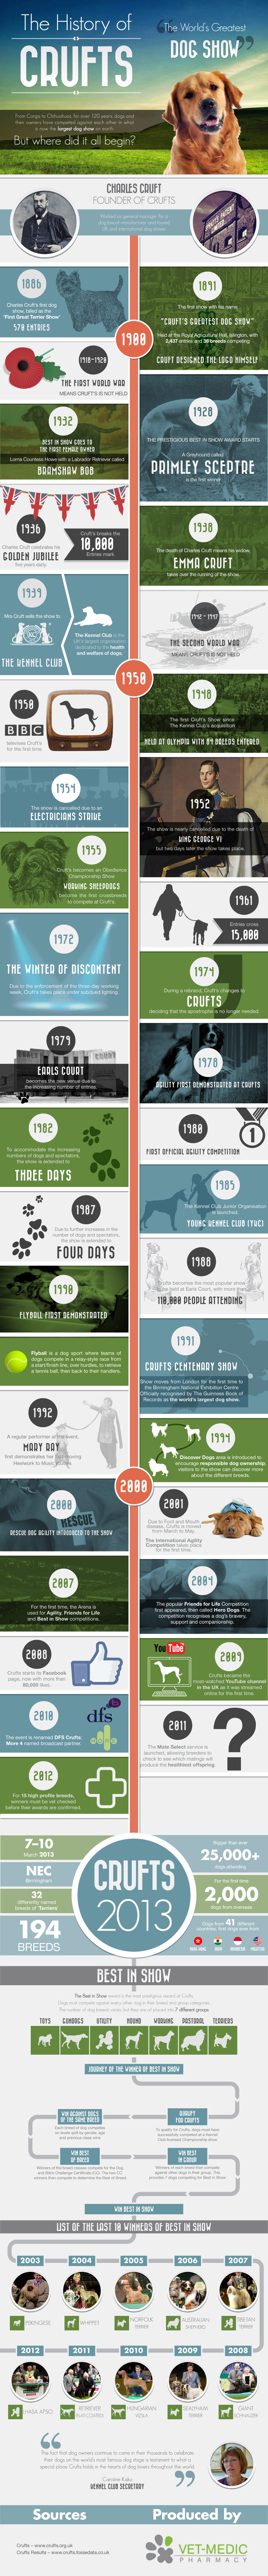 History of Crufts | ARKanimals